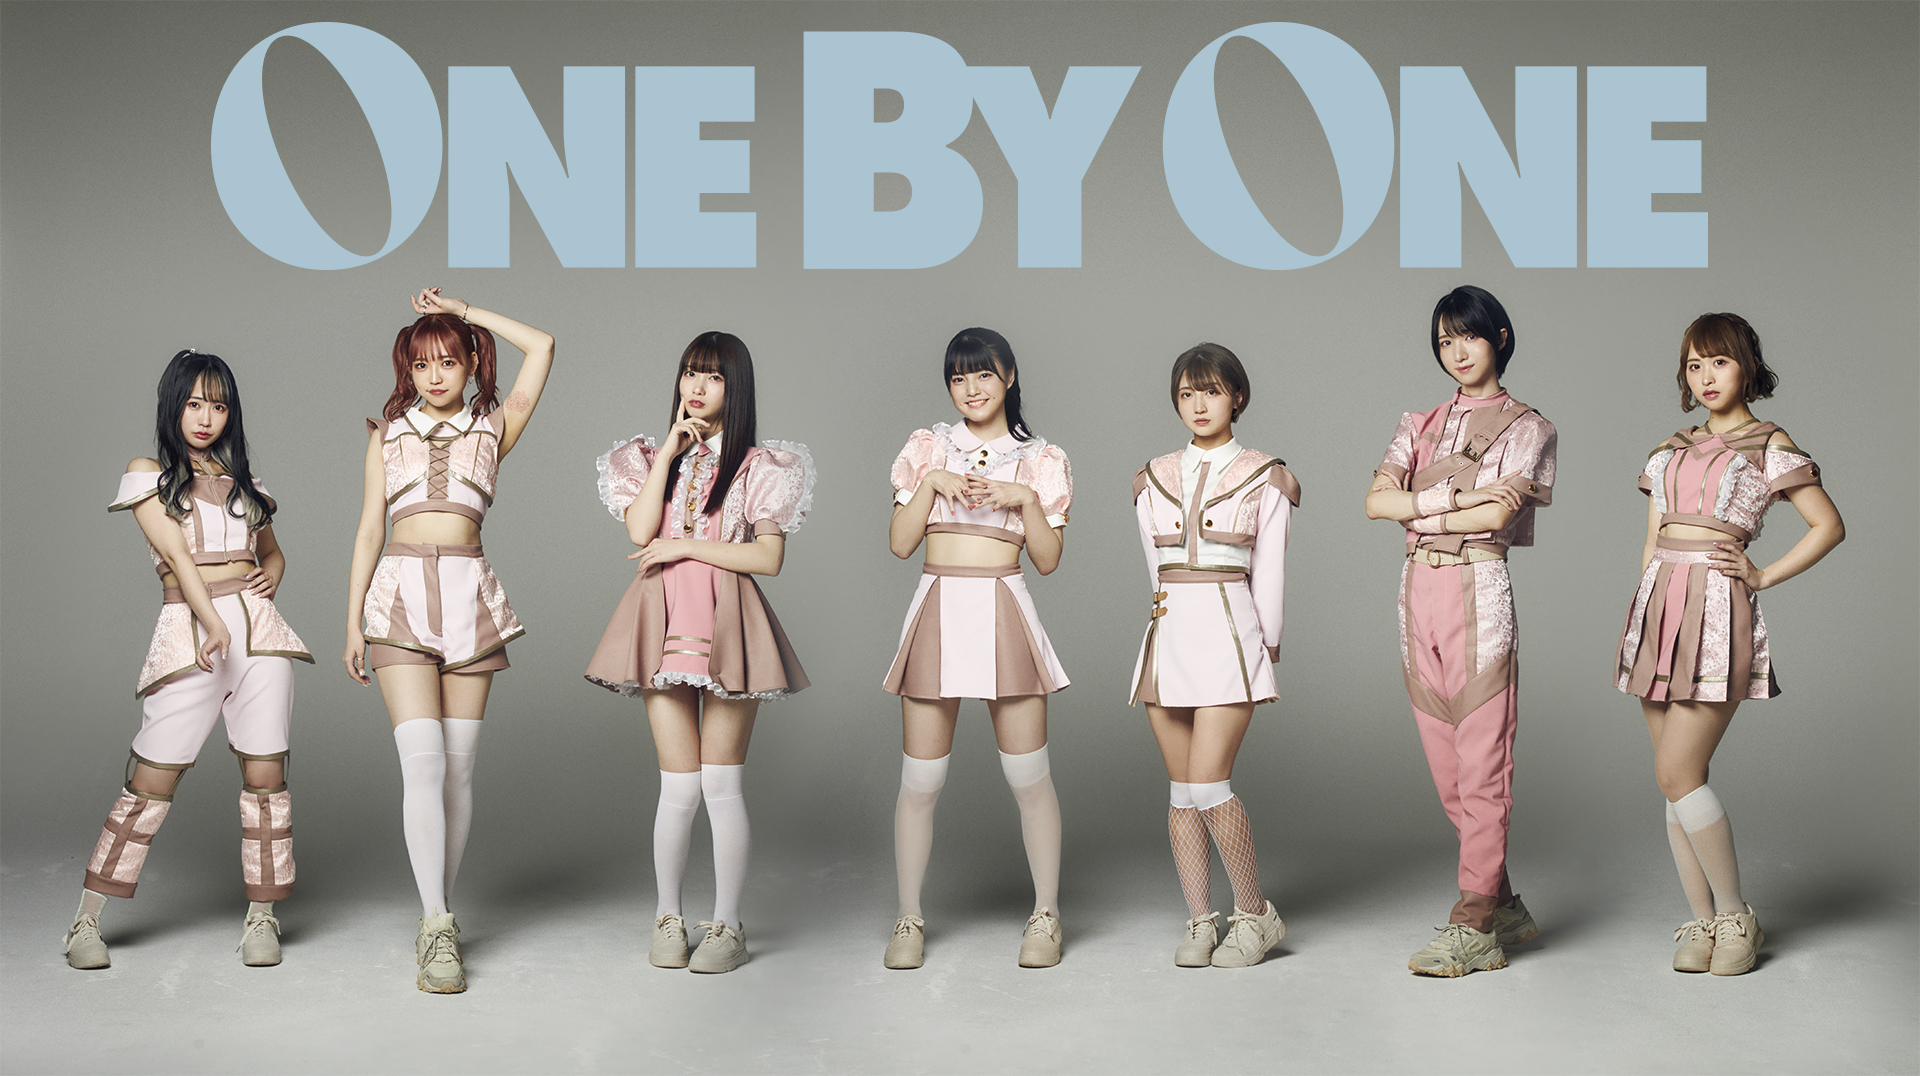 N production presents「ONE BY ONE」お披露目ライブ